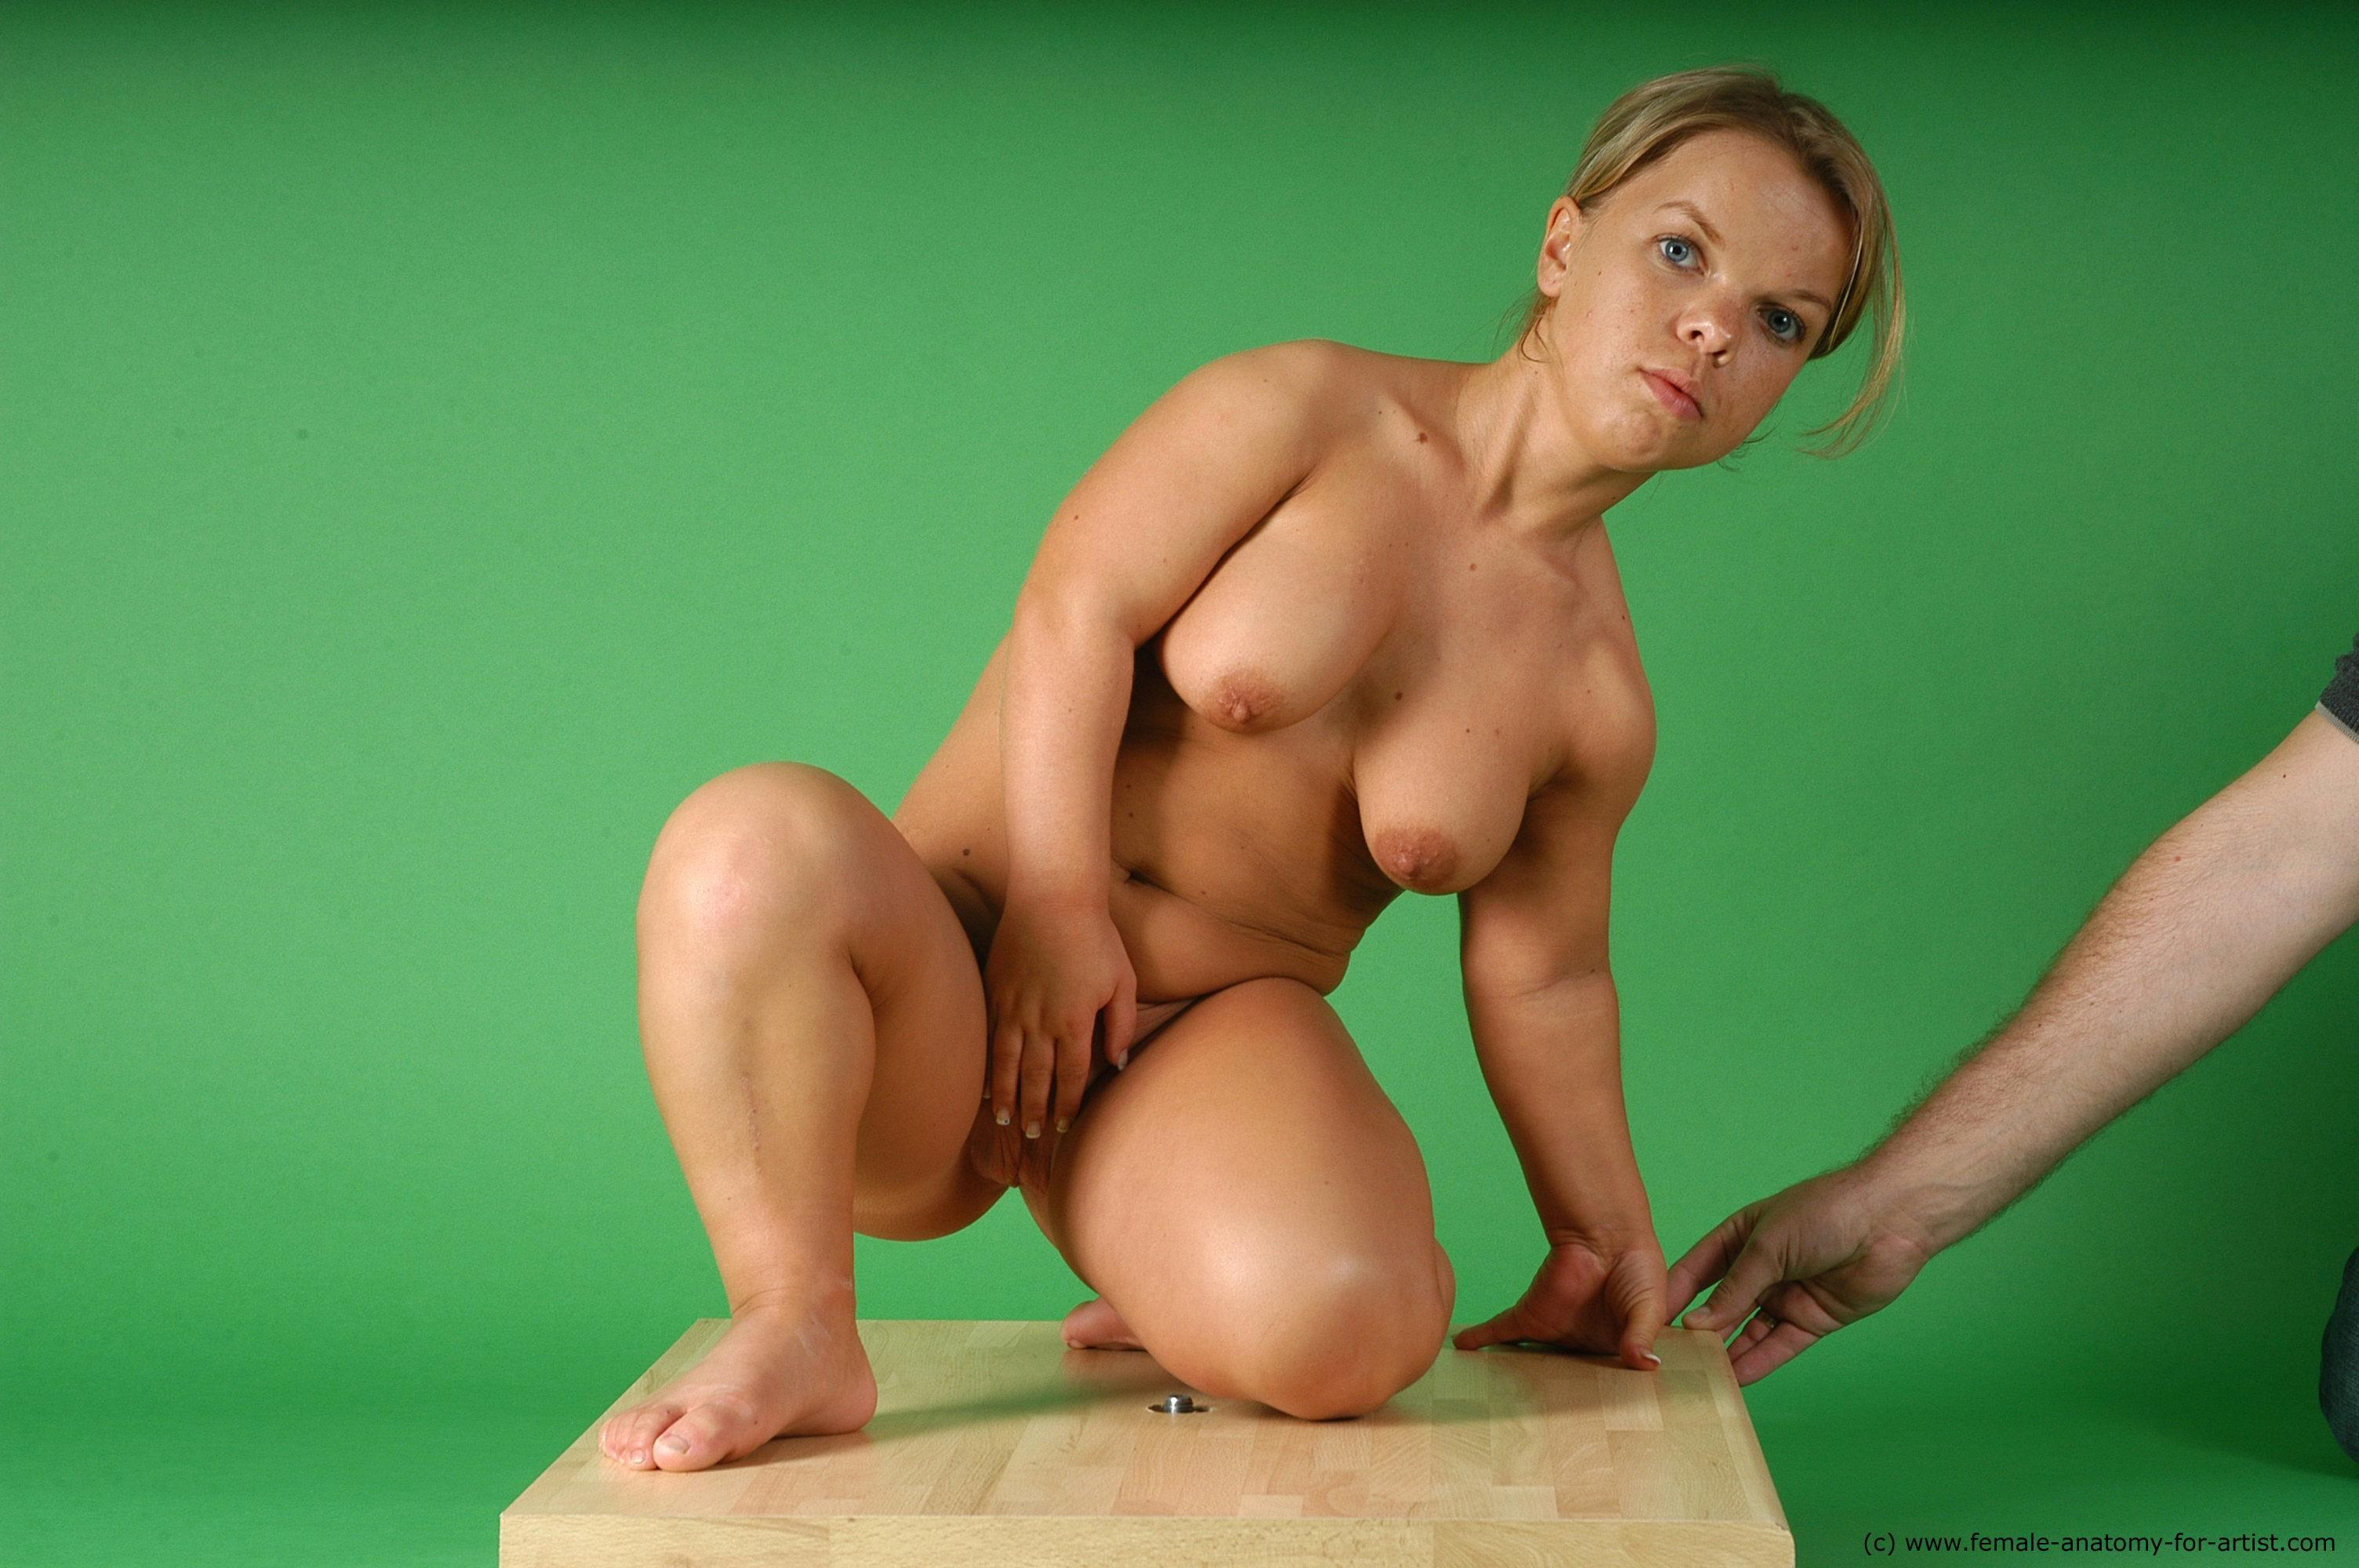 Midget milf naked husband and wife